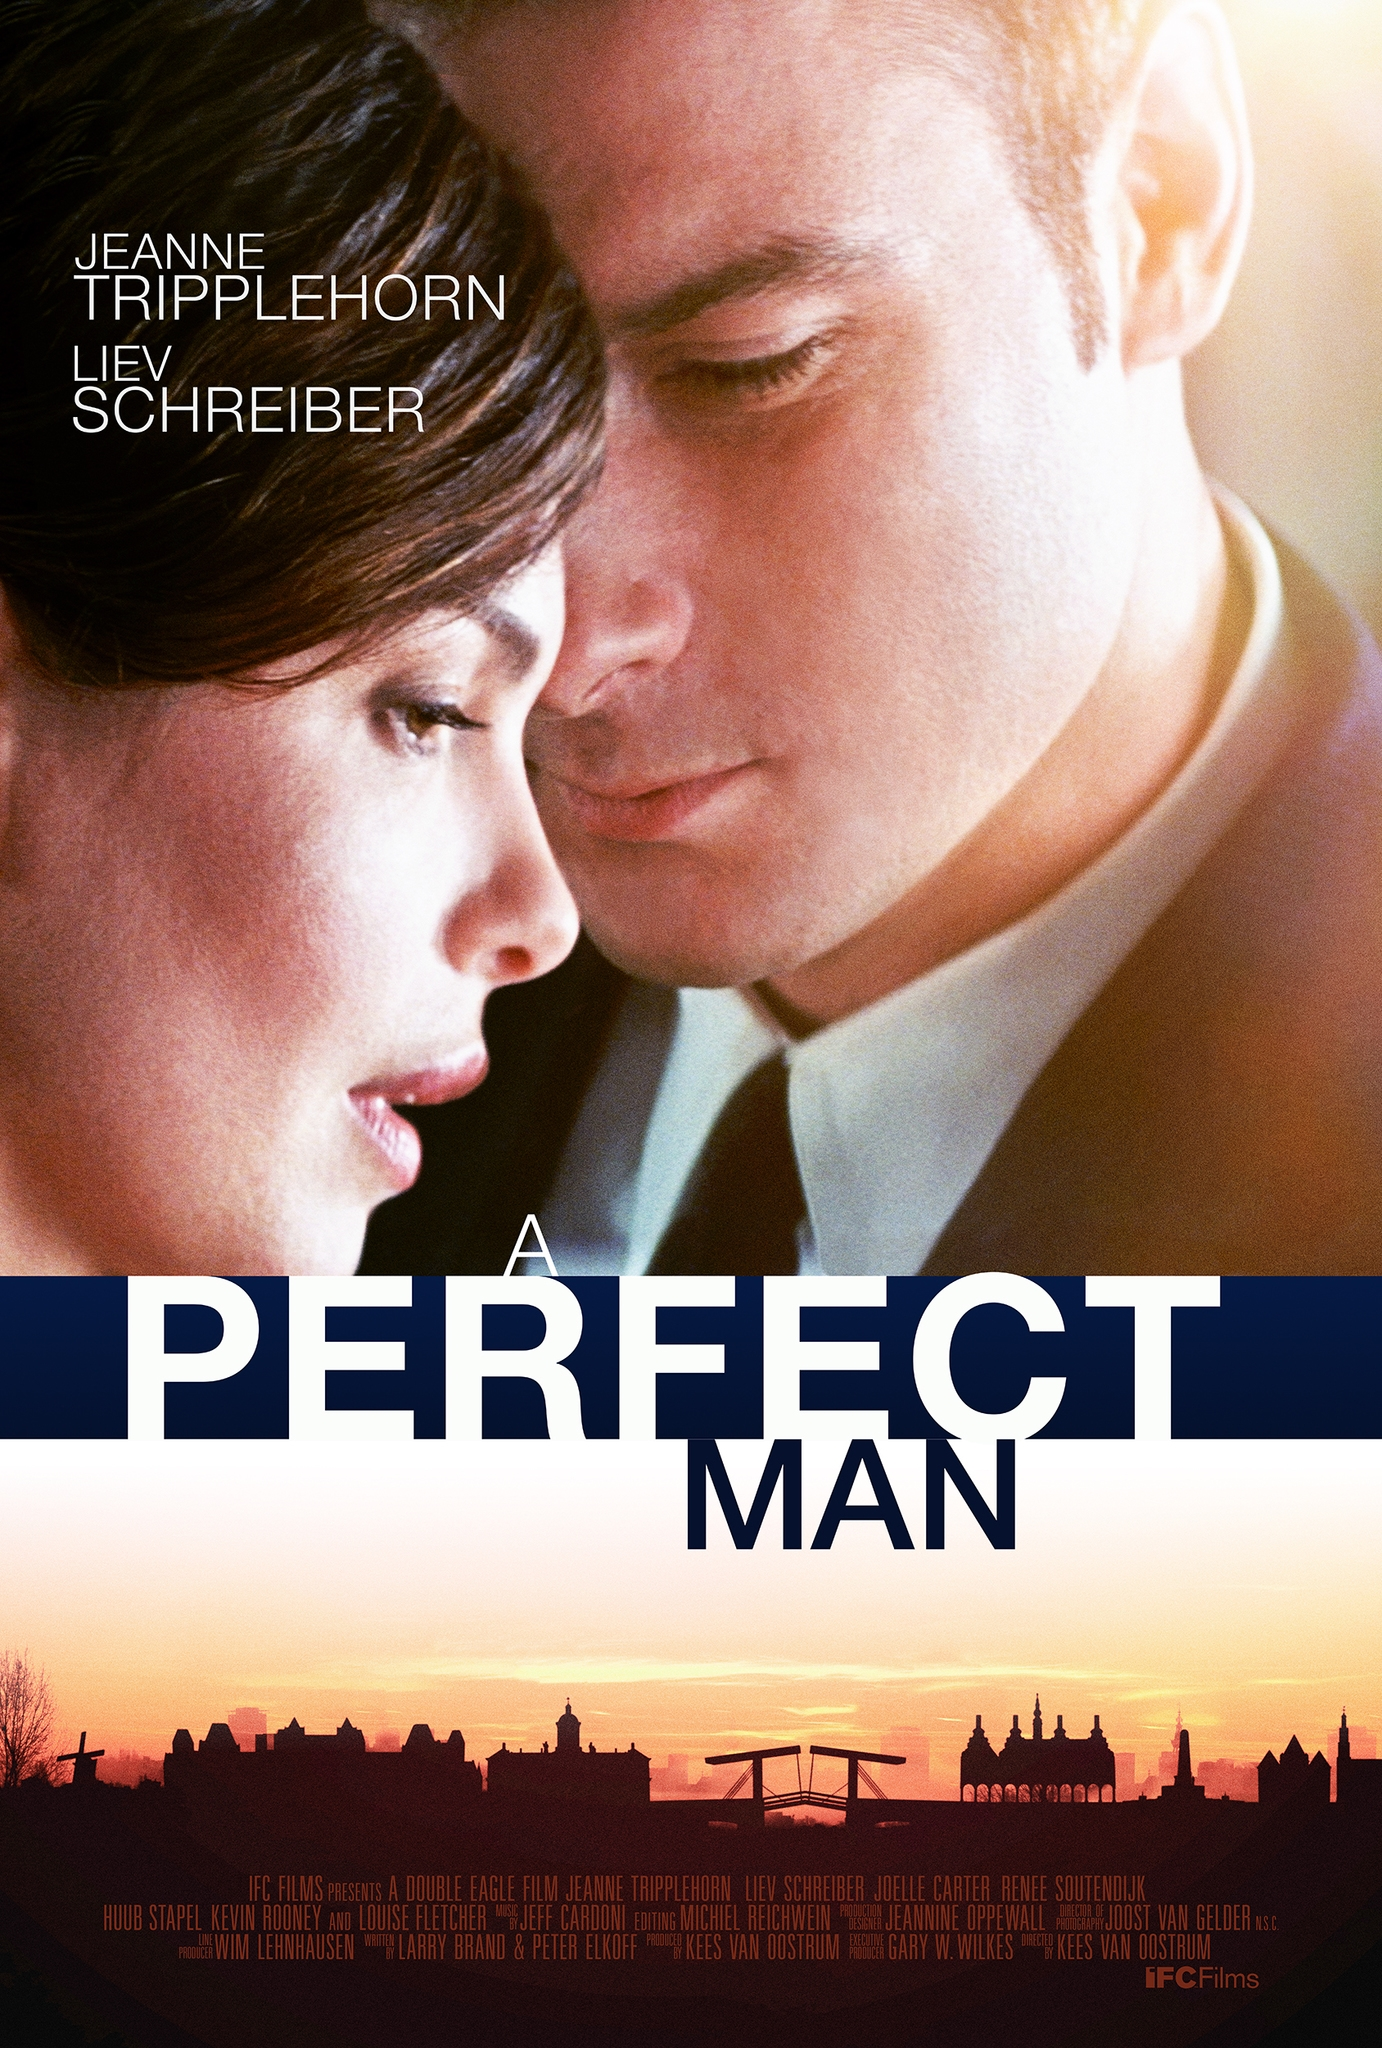 The Perfect Man Movie Quotes. QuotesGram